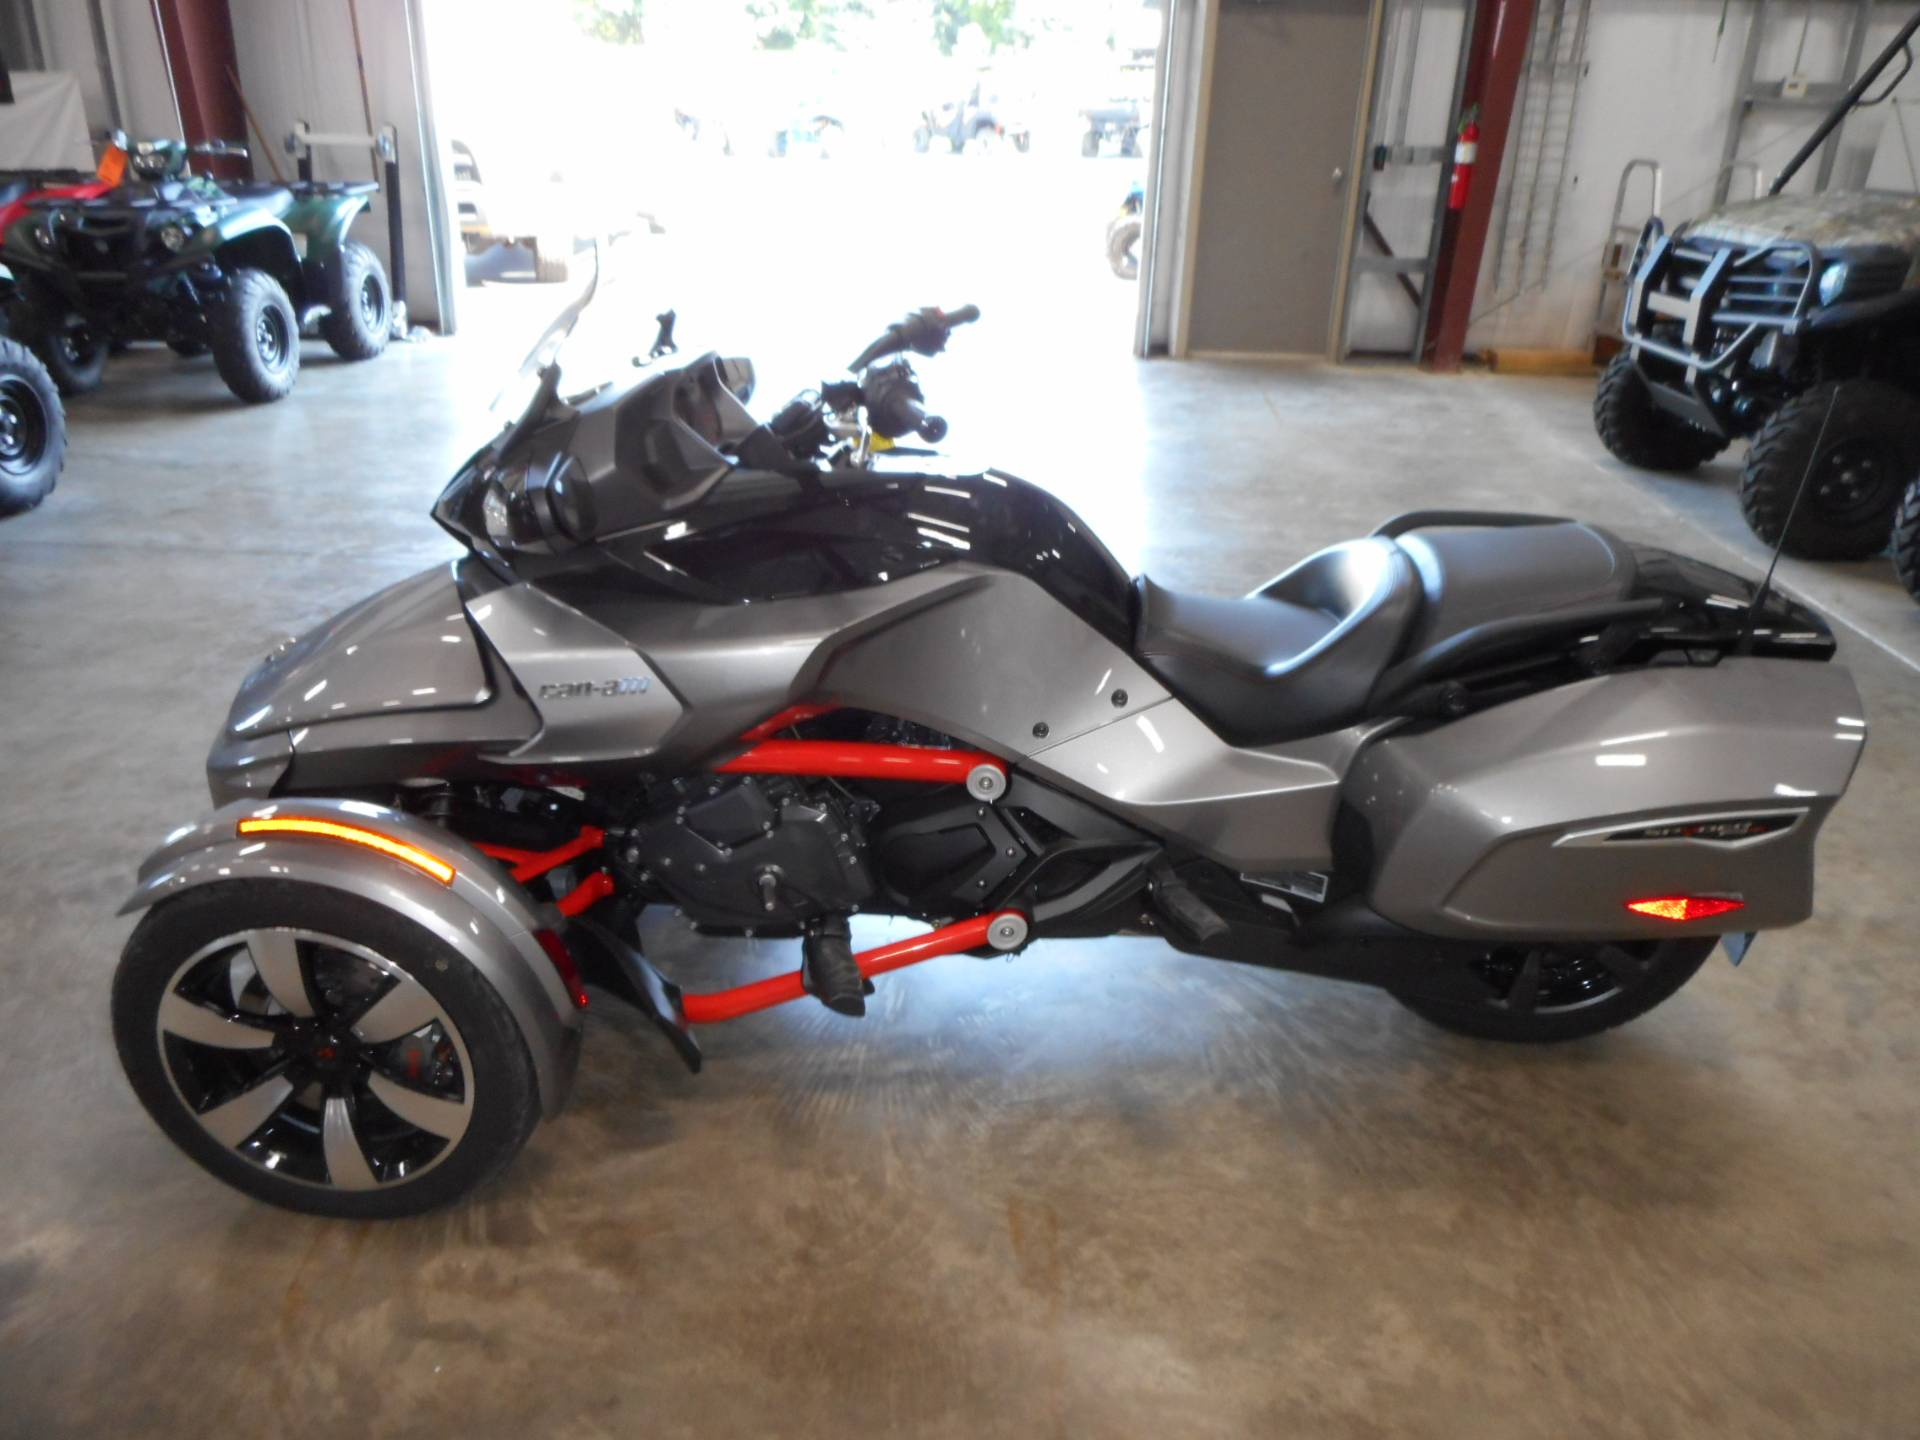 2016 Can-Am Spyder F3-T SM6 w/ Audio System in Belvidere, Illinois - Photo 5